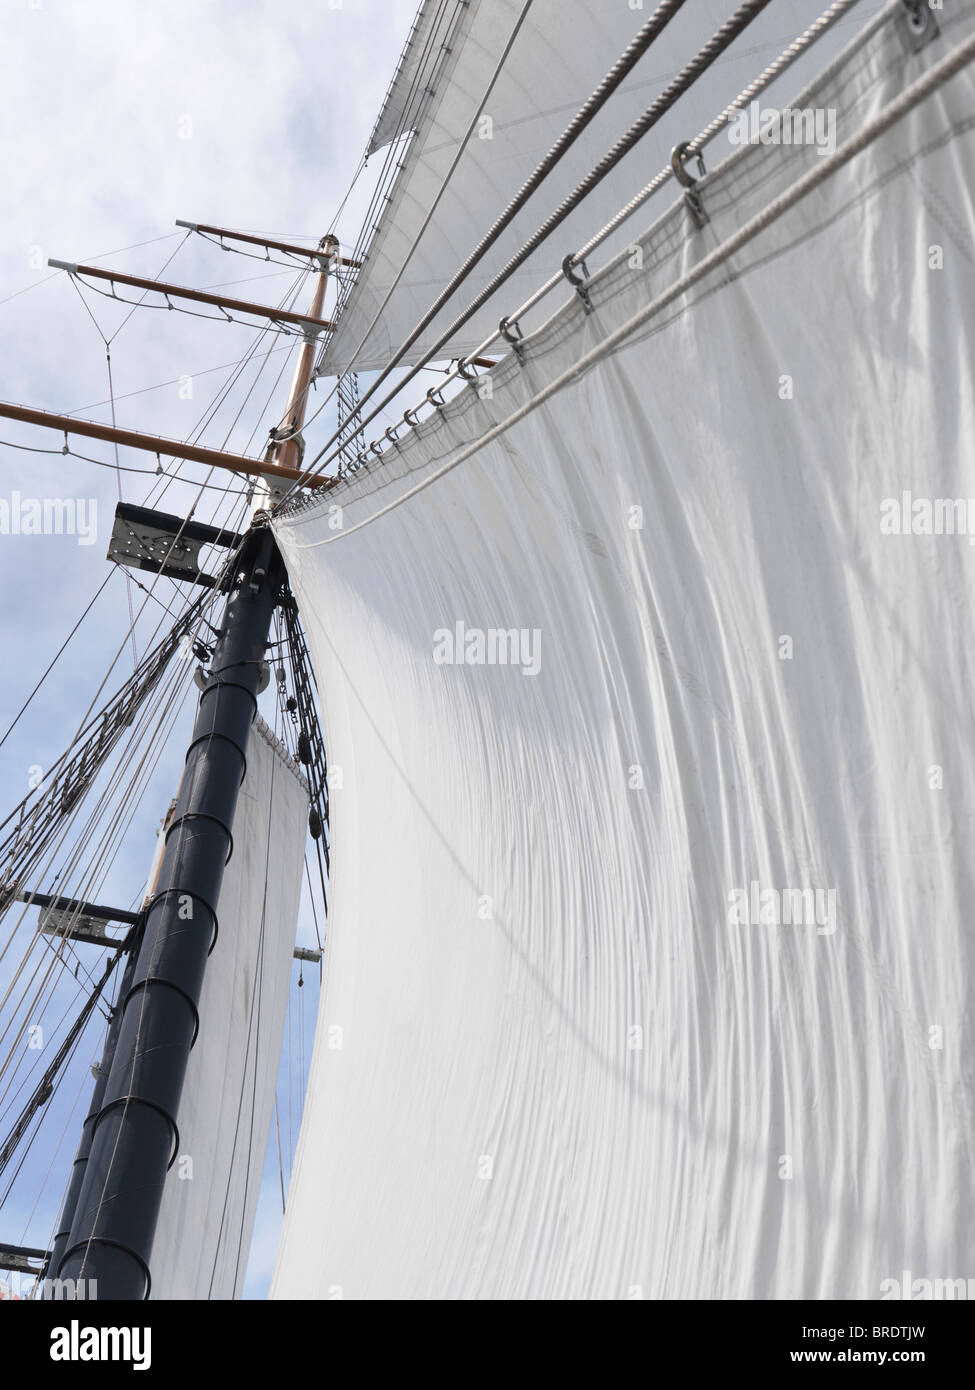 Tall ship triangular jib sails and a mast over blue sky background - Stock Image